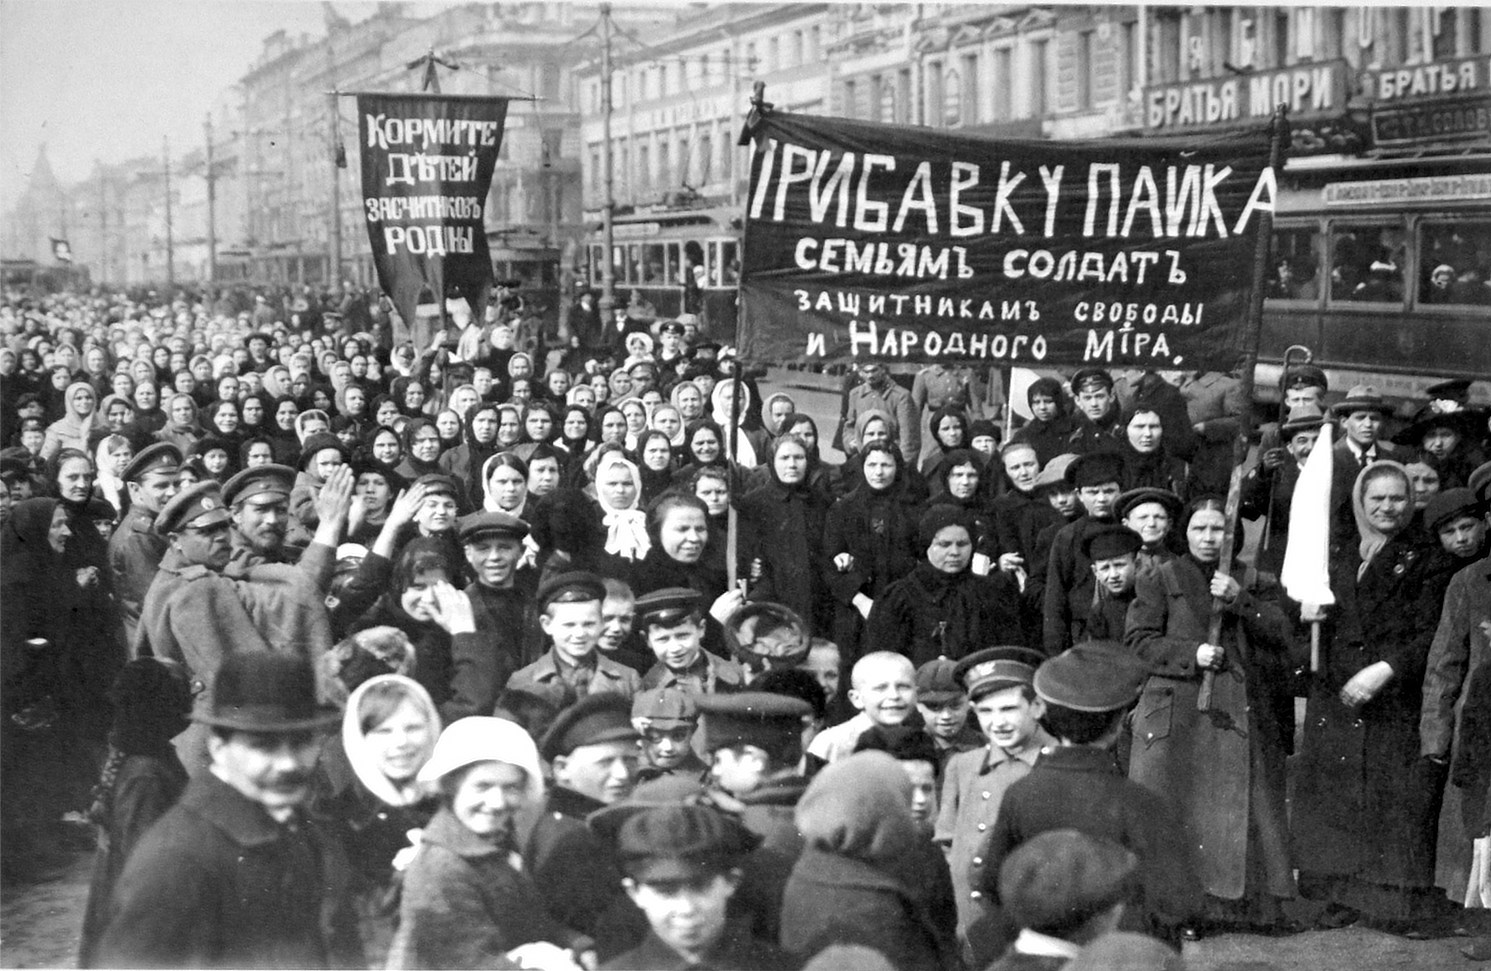 Demonstration of Putilov workers on the first day of the February Revolution of 1917 (Source: commons.wikimedia.org)